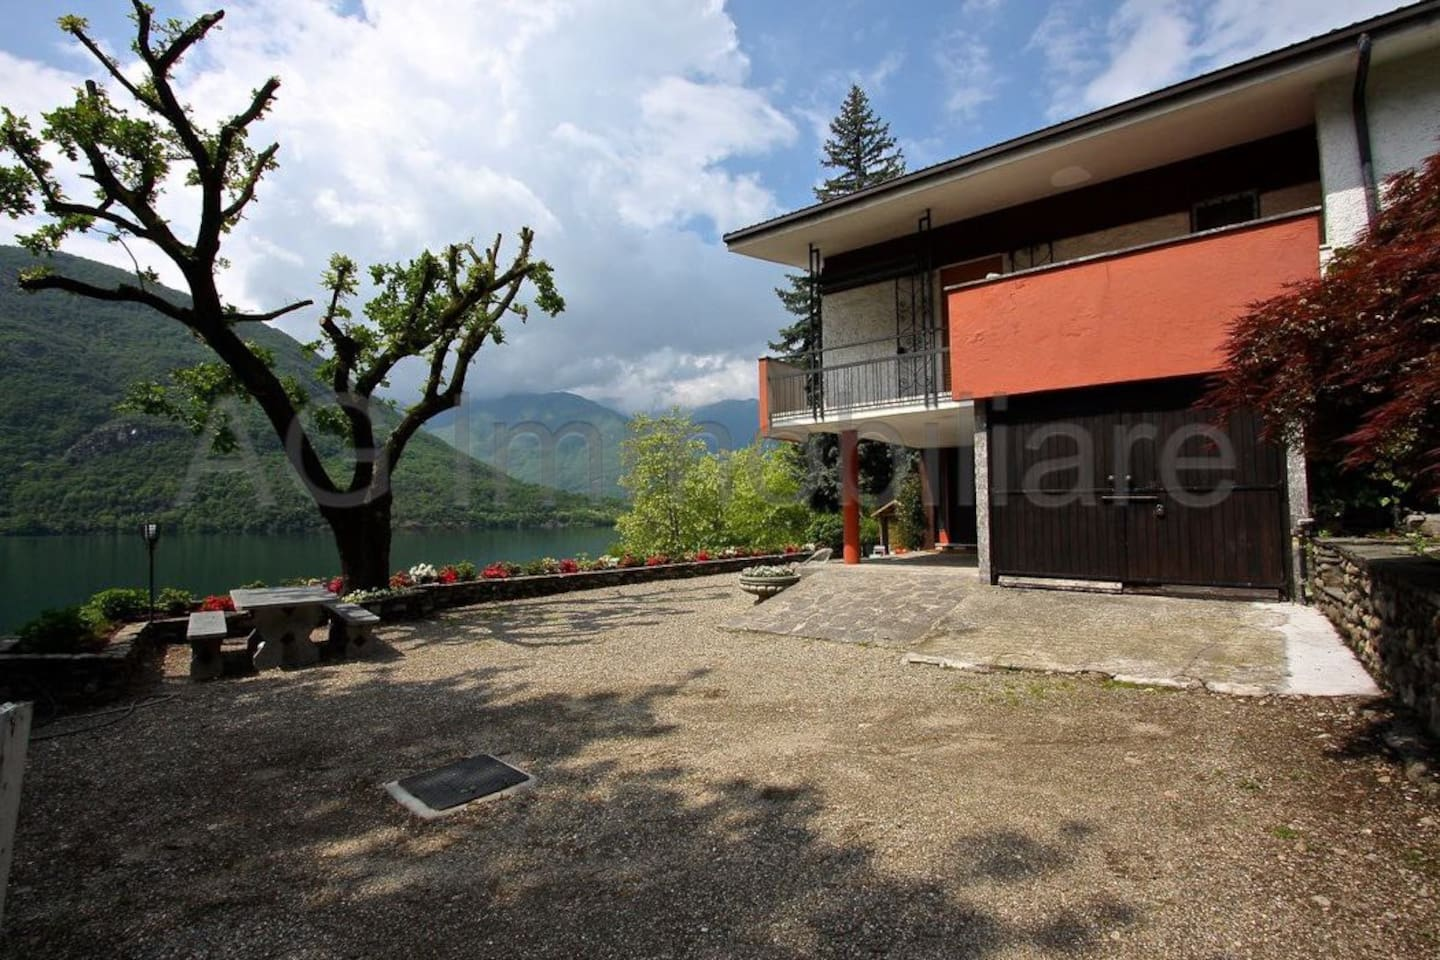 """Split-level detached lakefront home with 1000sq metres of garden. Tucked away on the hidden gem of """"Lago di Mergozzo"""", literally next to Italy's much more famous """"Lago Maggiore""""."""